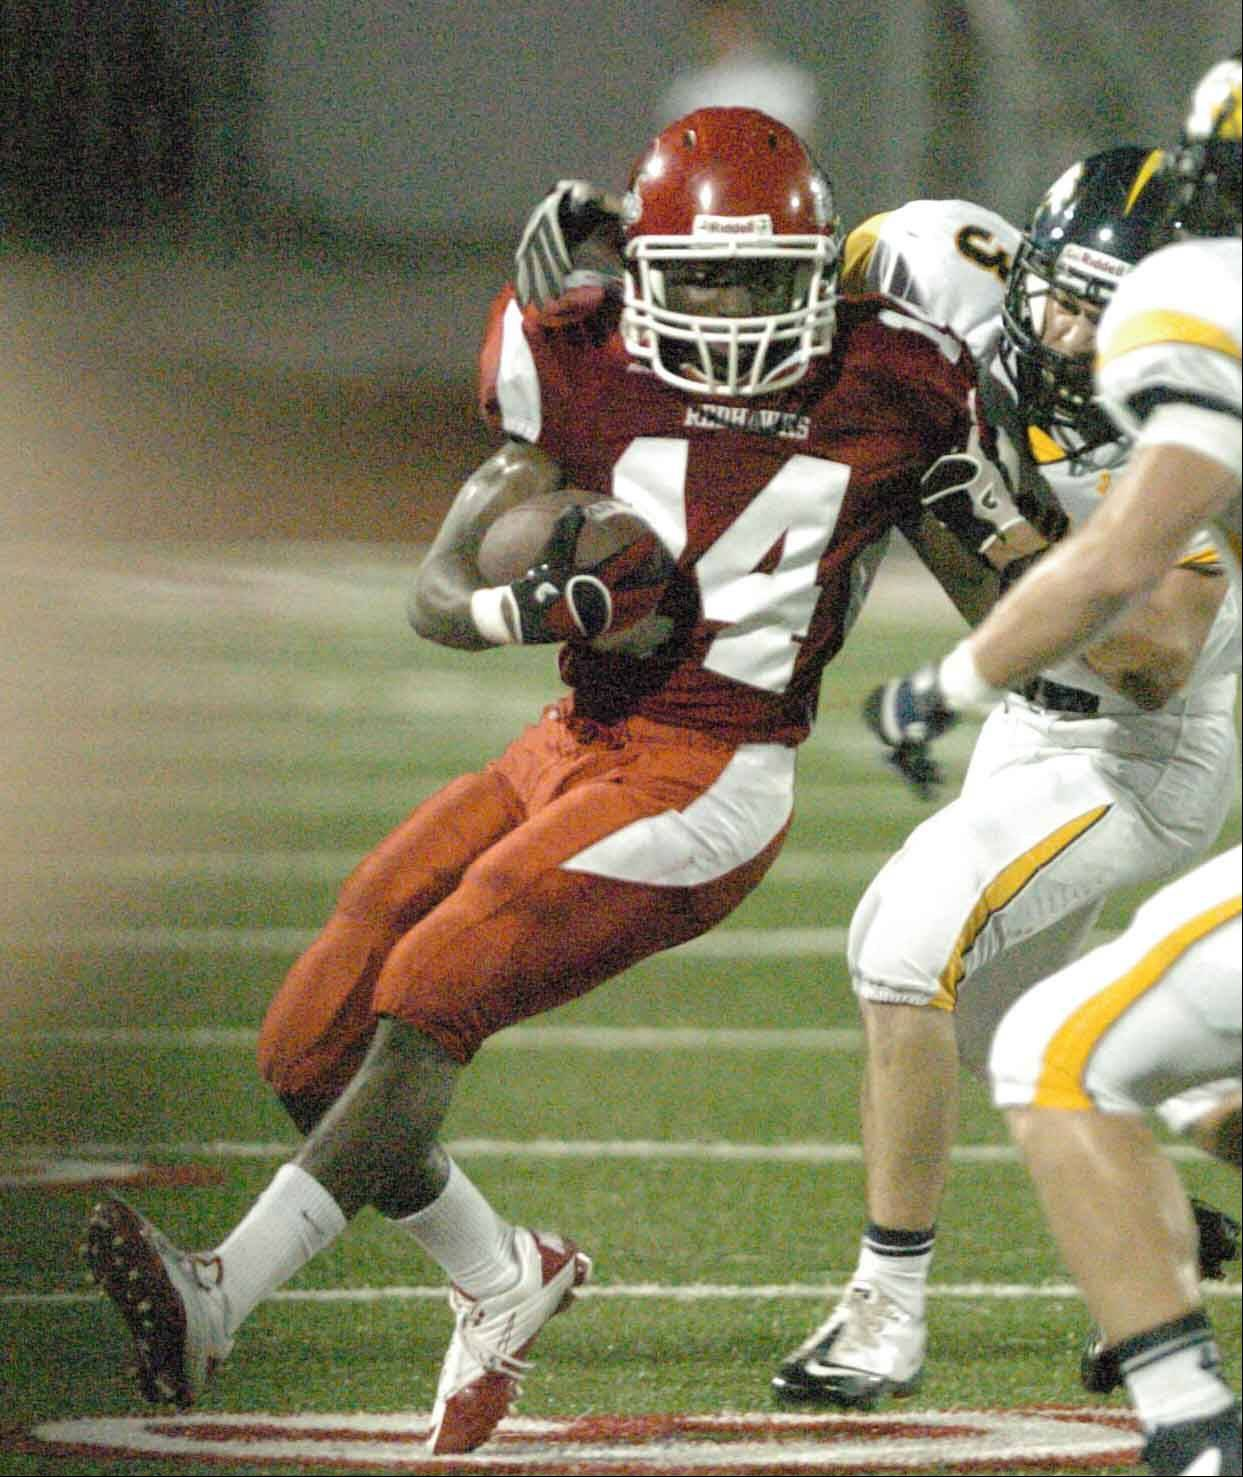 Lesoda Thompson of Naperville on the move during the Neuqua Valley at Naperville Central game Friday.